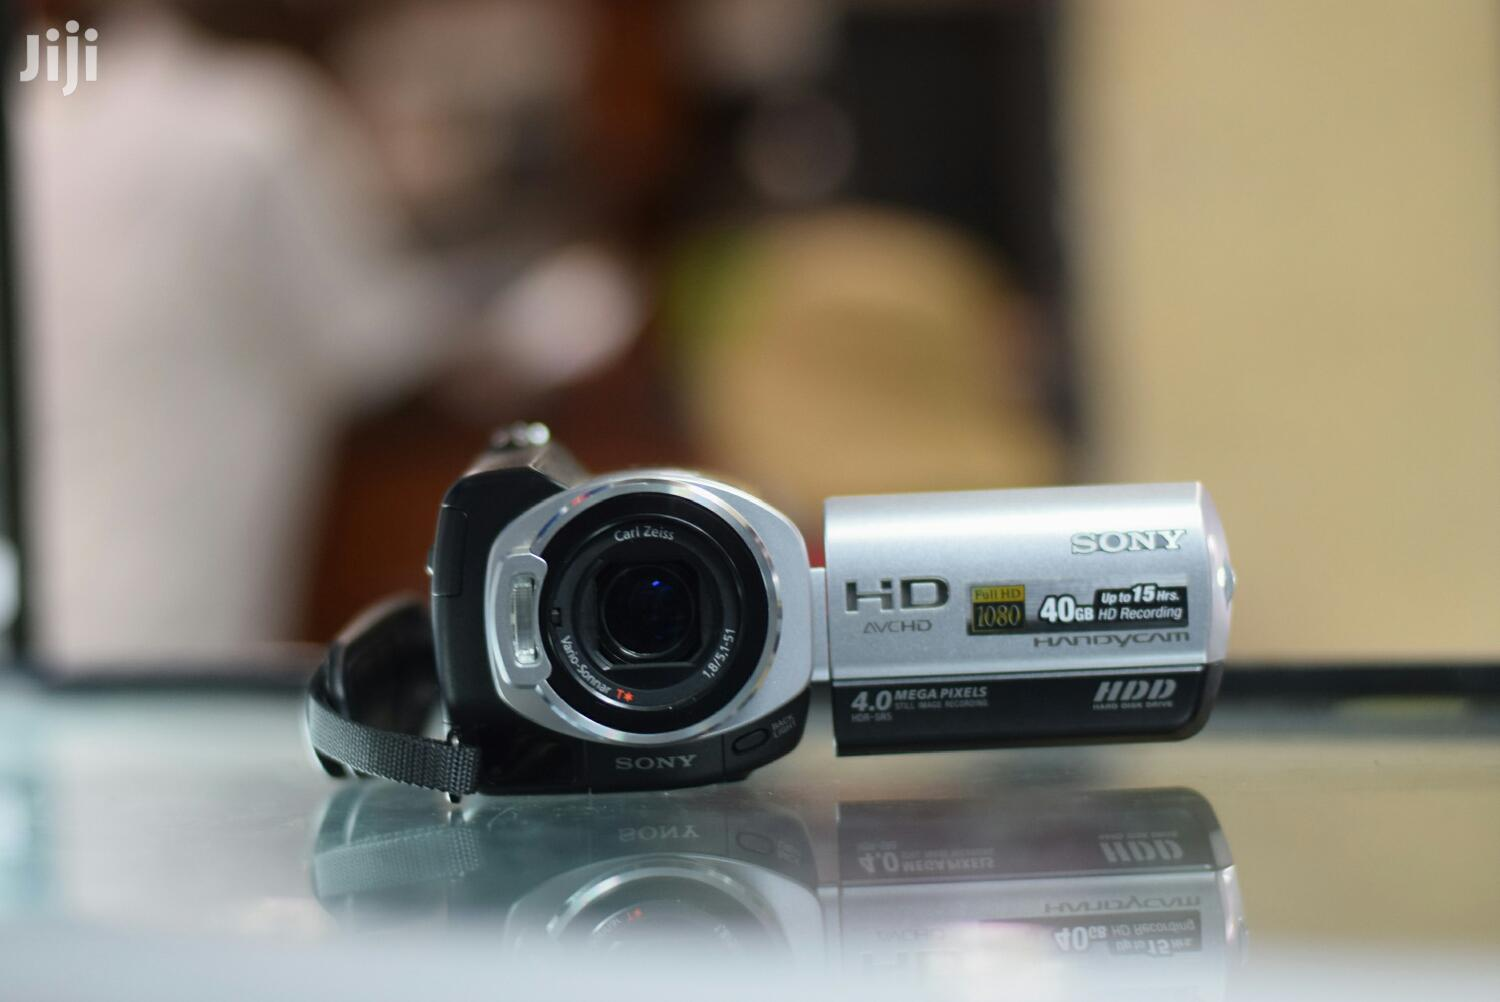 Great Sony Pro Camcorder Camera In Nairobi Central Photo Video Cameras Must Have Offers Jiji Co Ke For Sale In Nairobi Central Buy Photo Video Cameras From Must Have